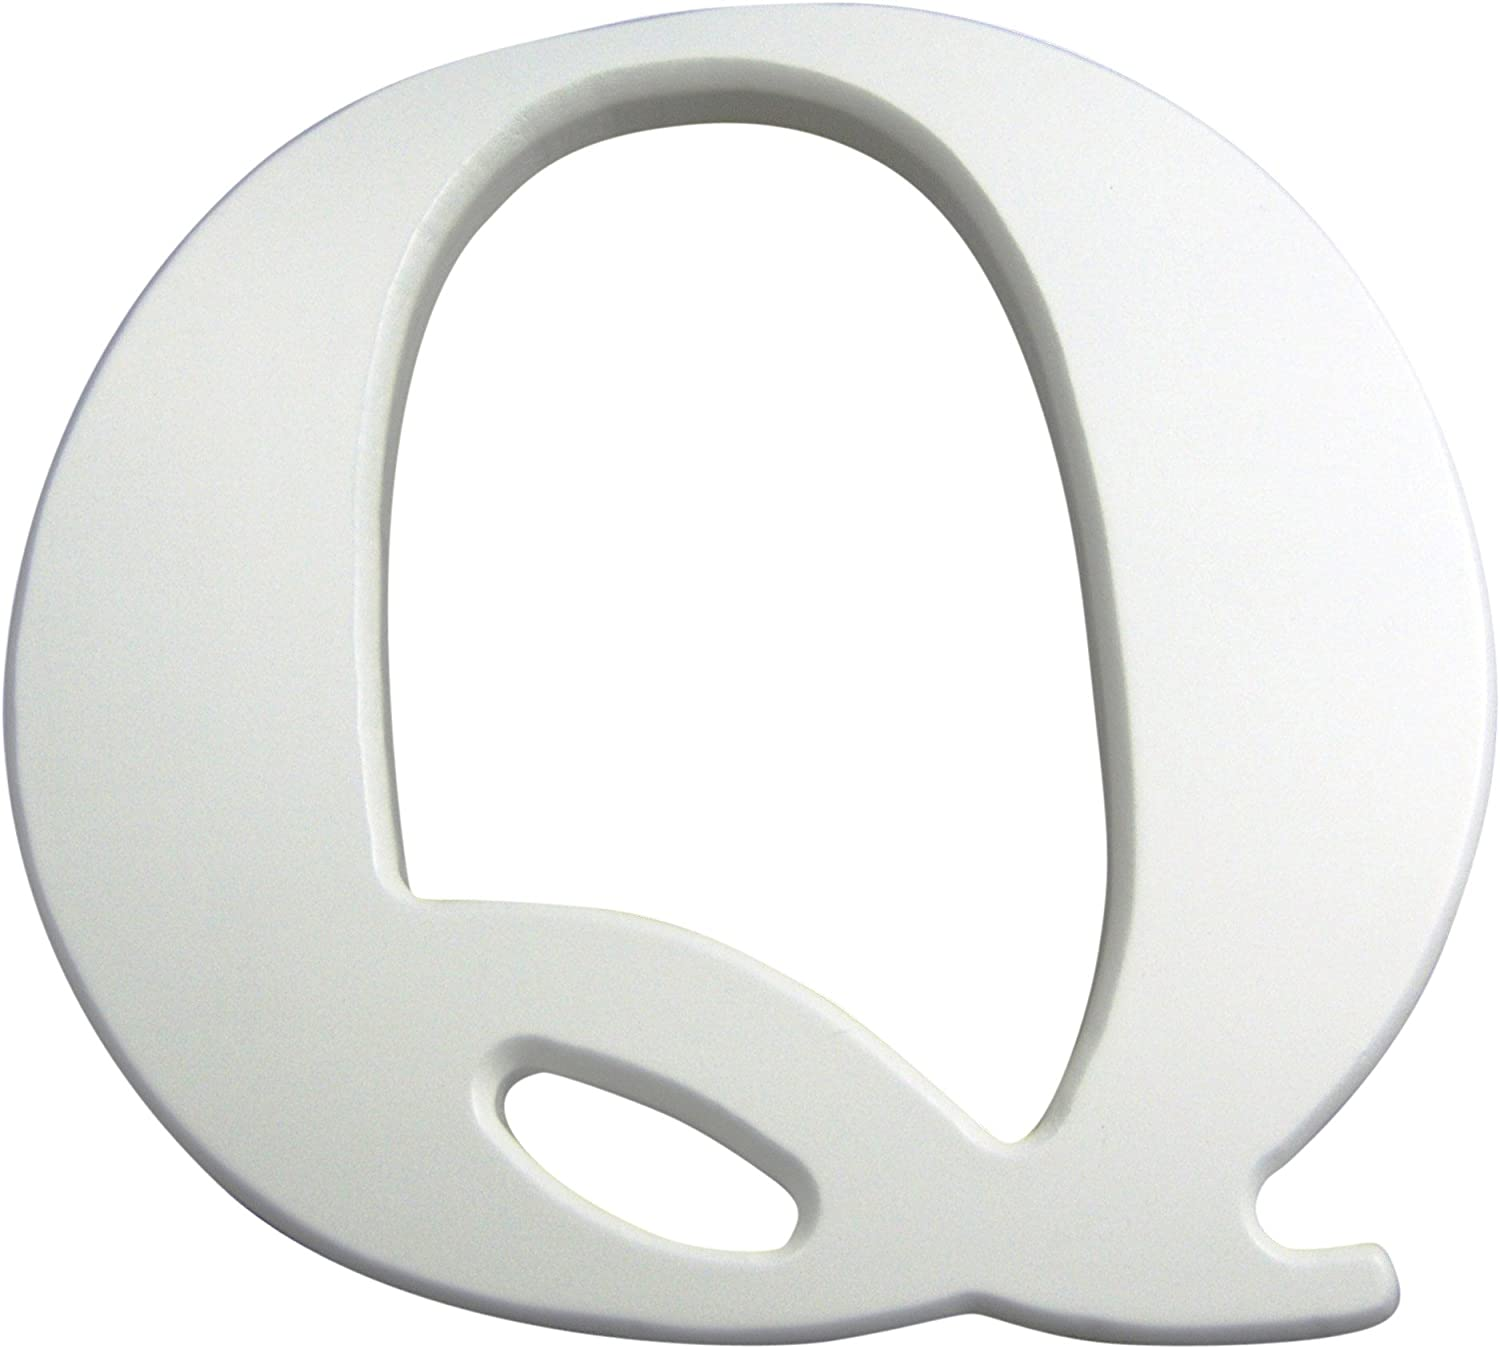 Kids Line Capital Letter Q White MDF Timber Finish K with Popular overseas Surprise price